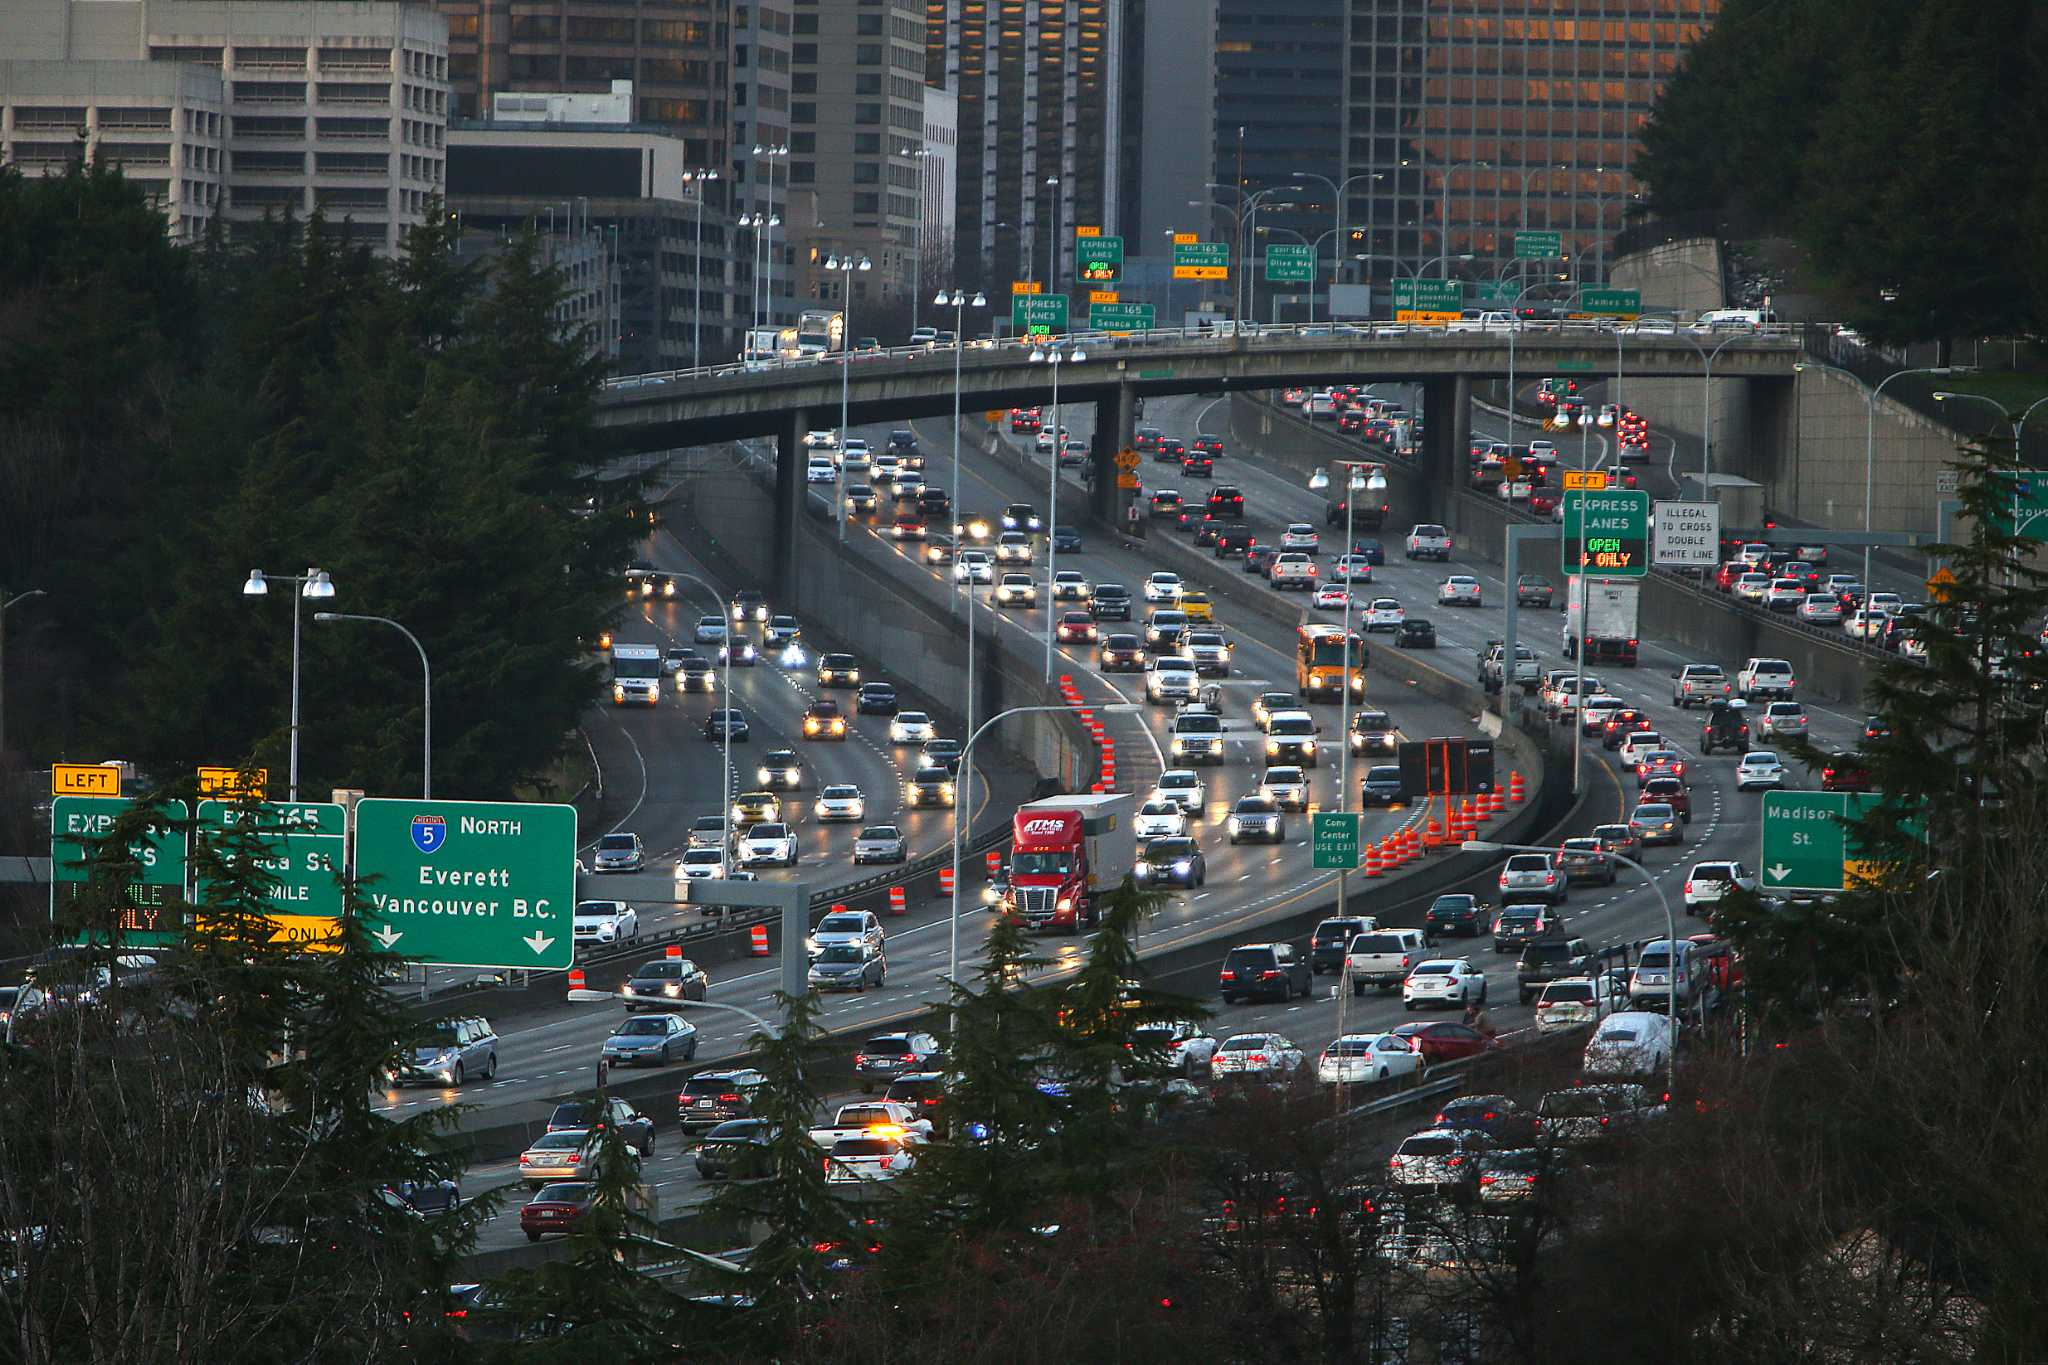 Traffic roundup: How viaduct demolition and the Capitol Hill Block will affect your weekend